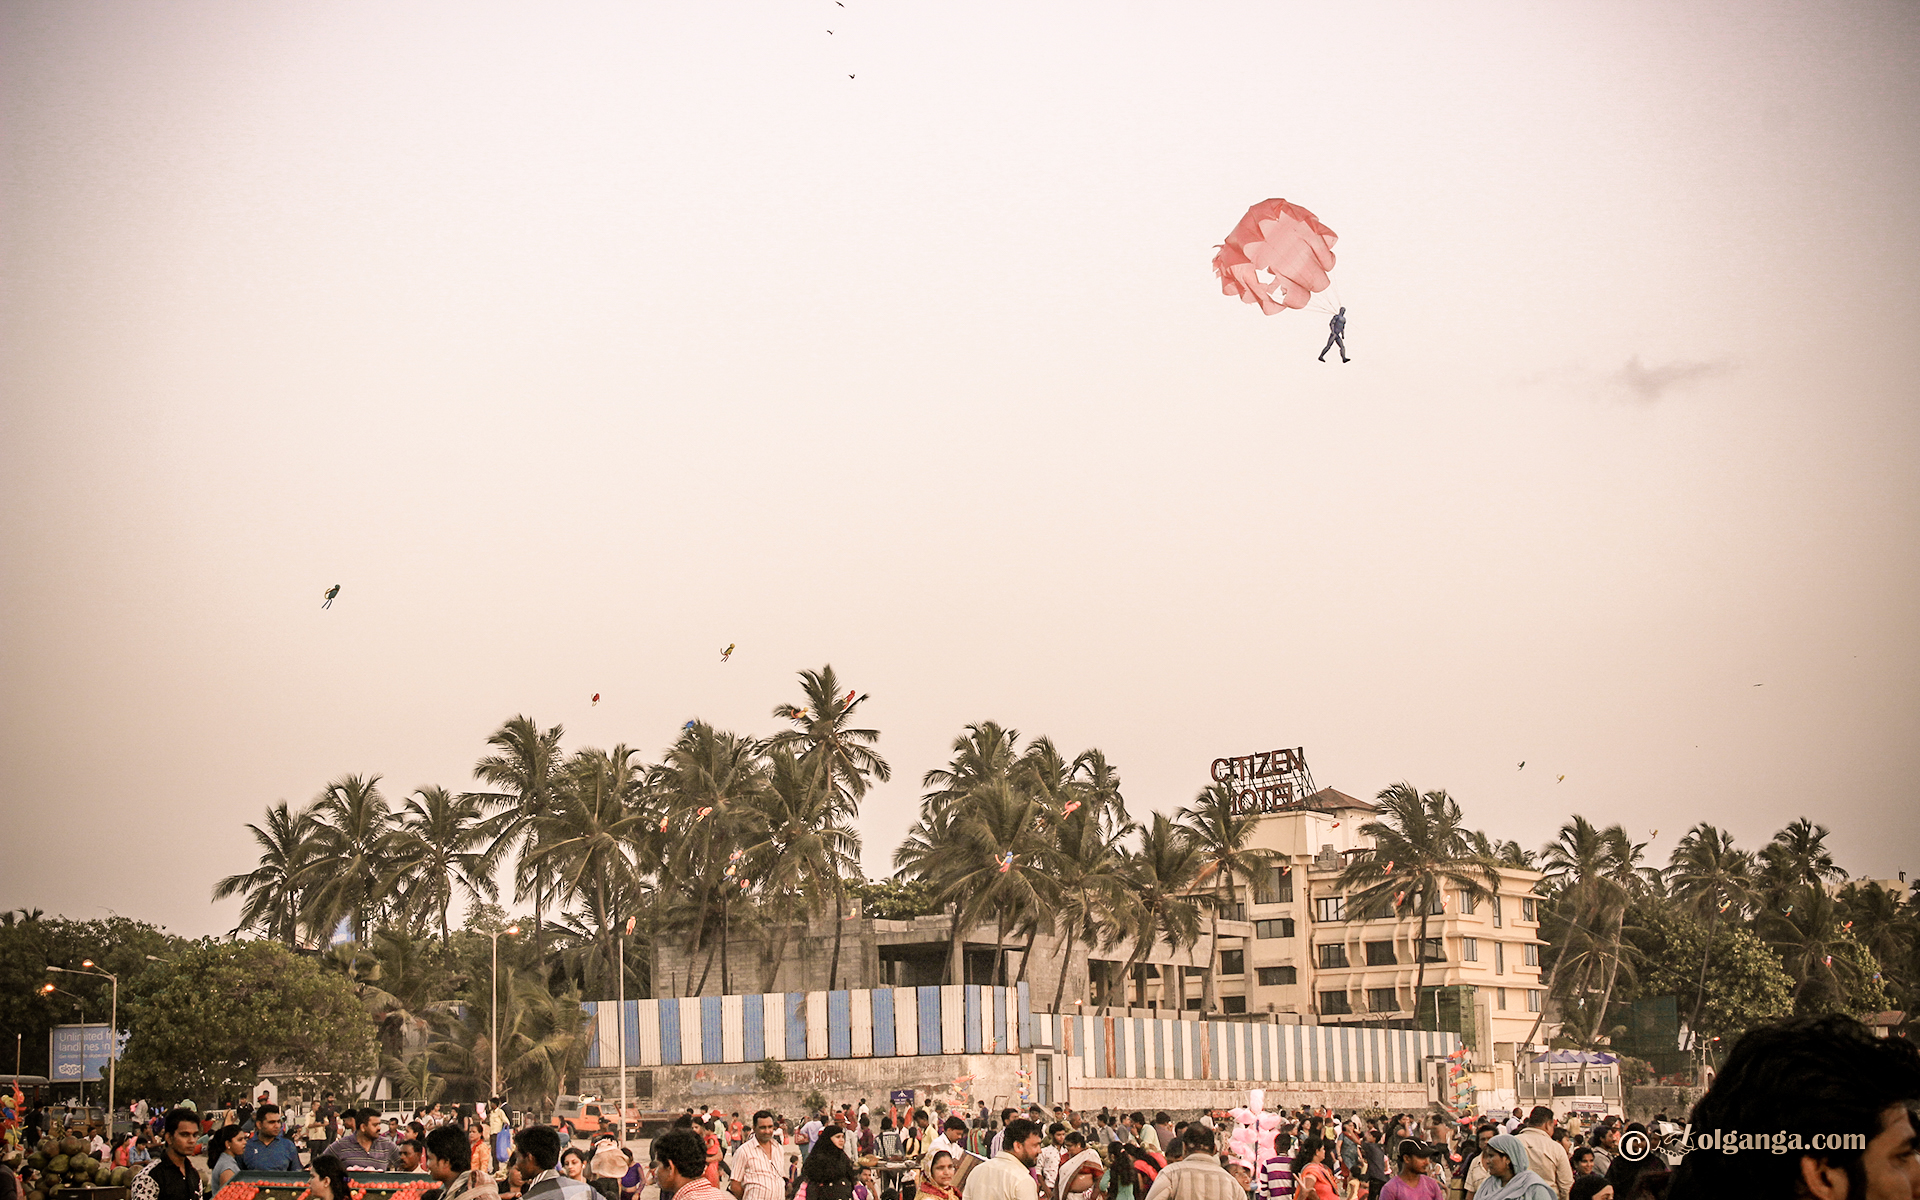 juhu-beach-mumbai_hd02